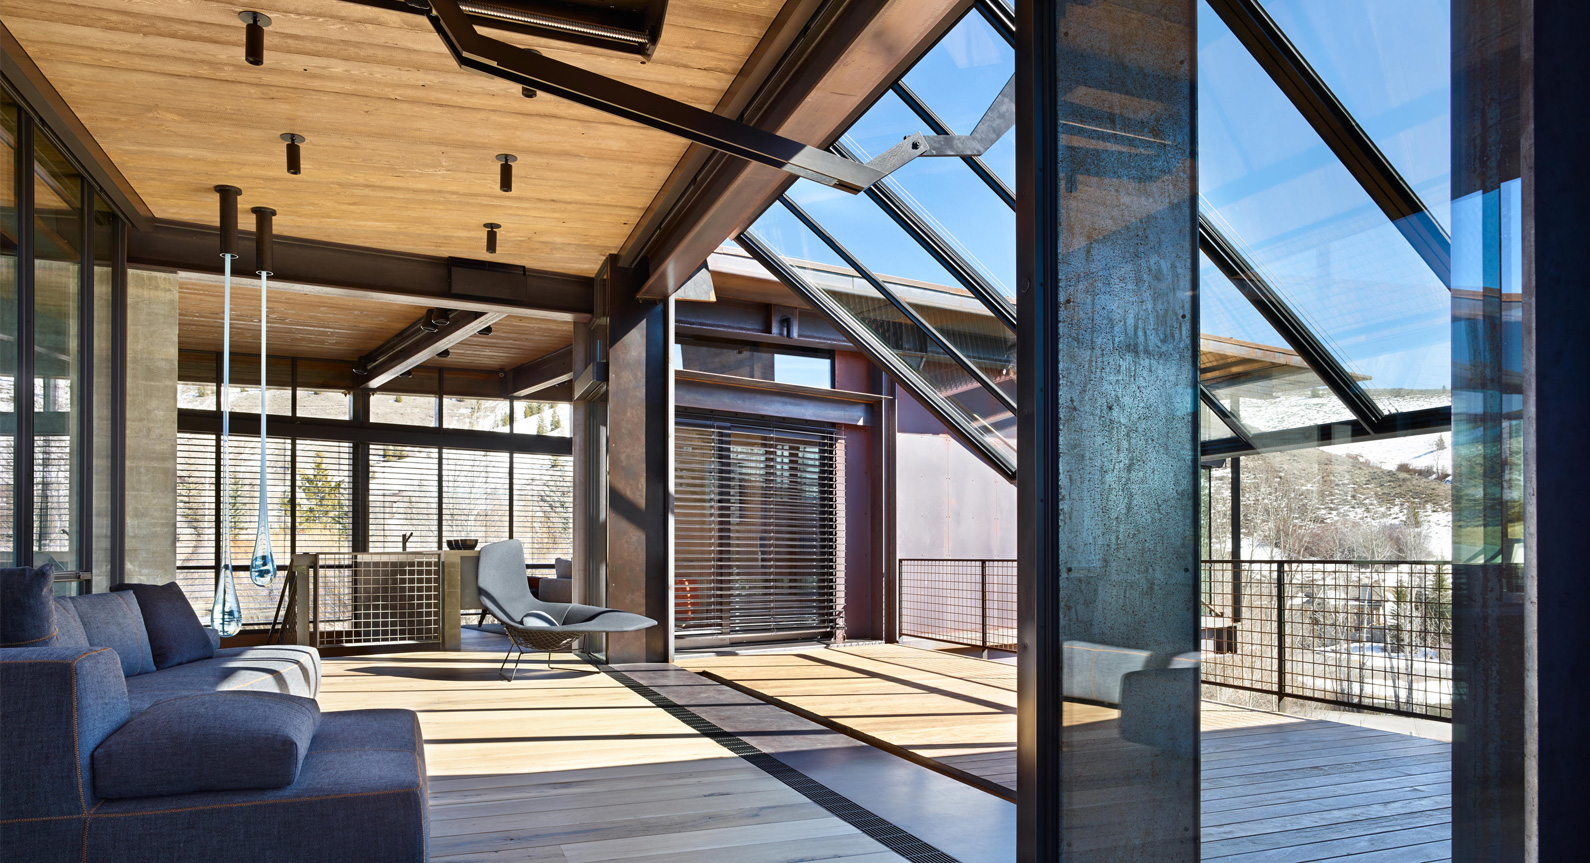 Take A Look Inside The 'Bigwood Residence' by Olson Kundig